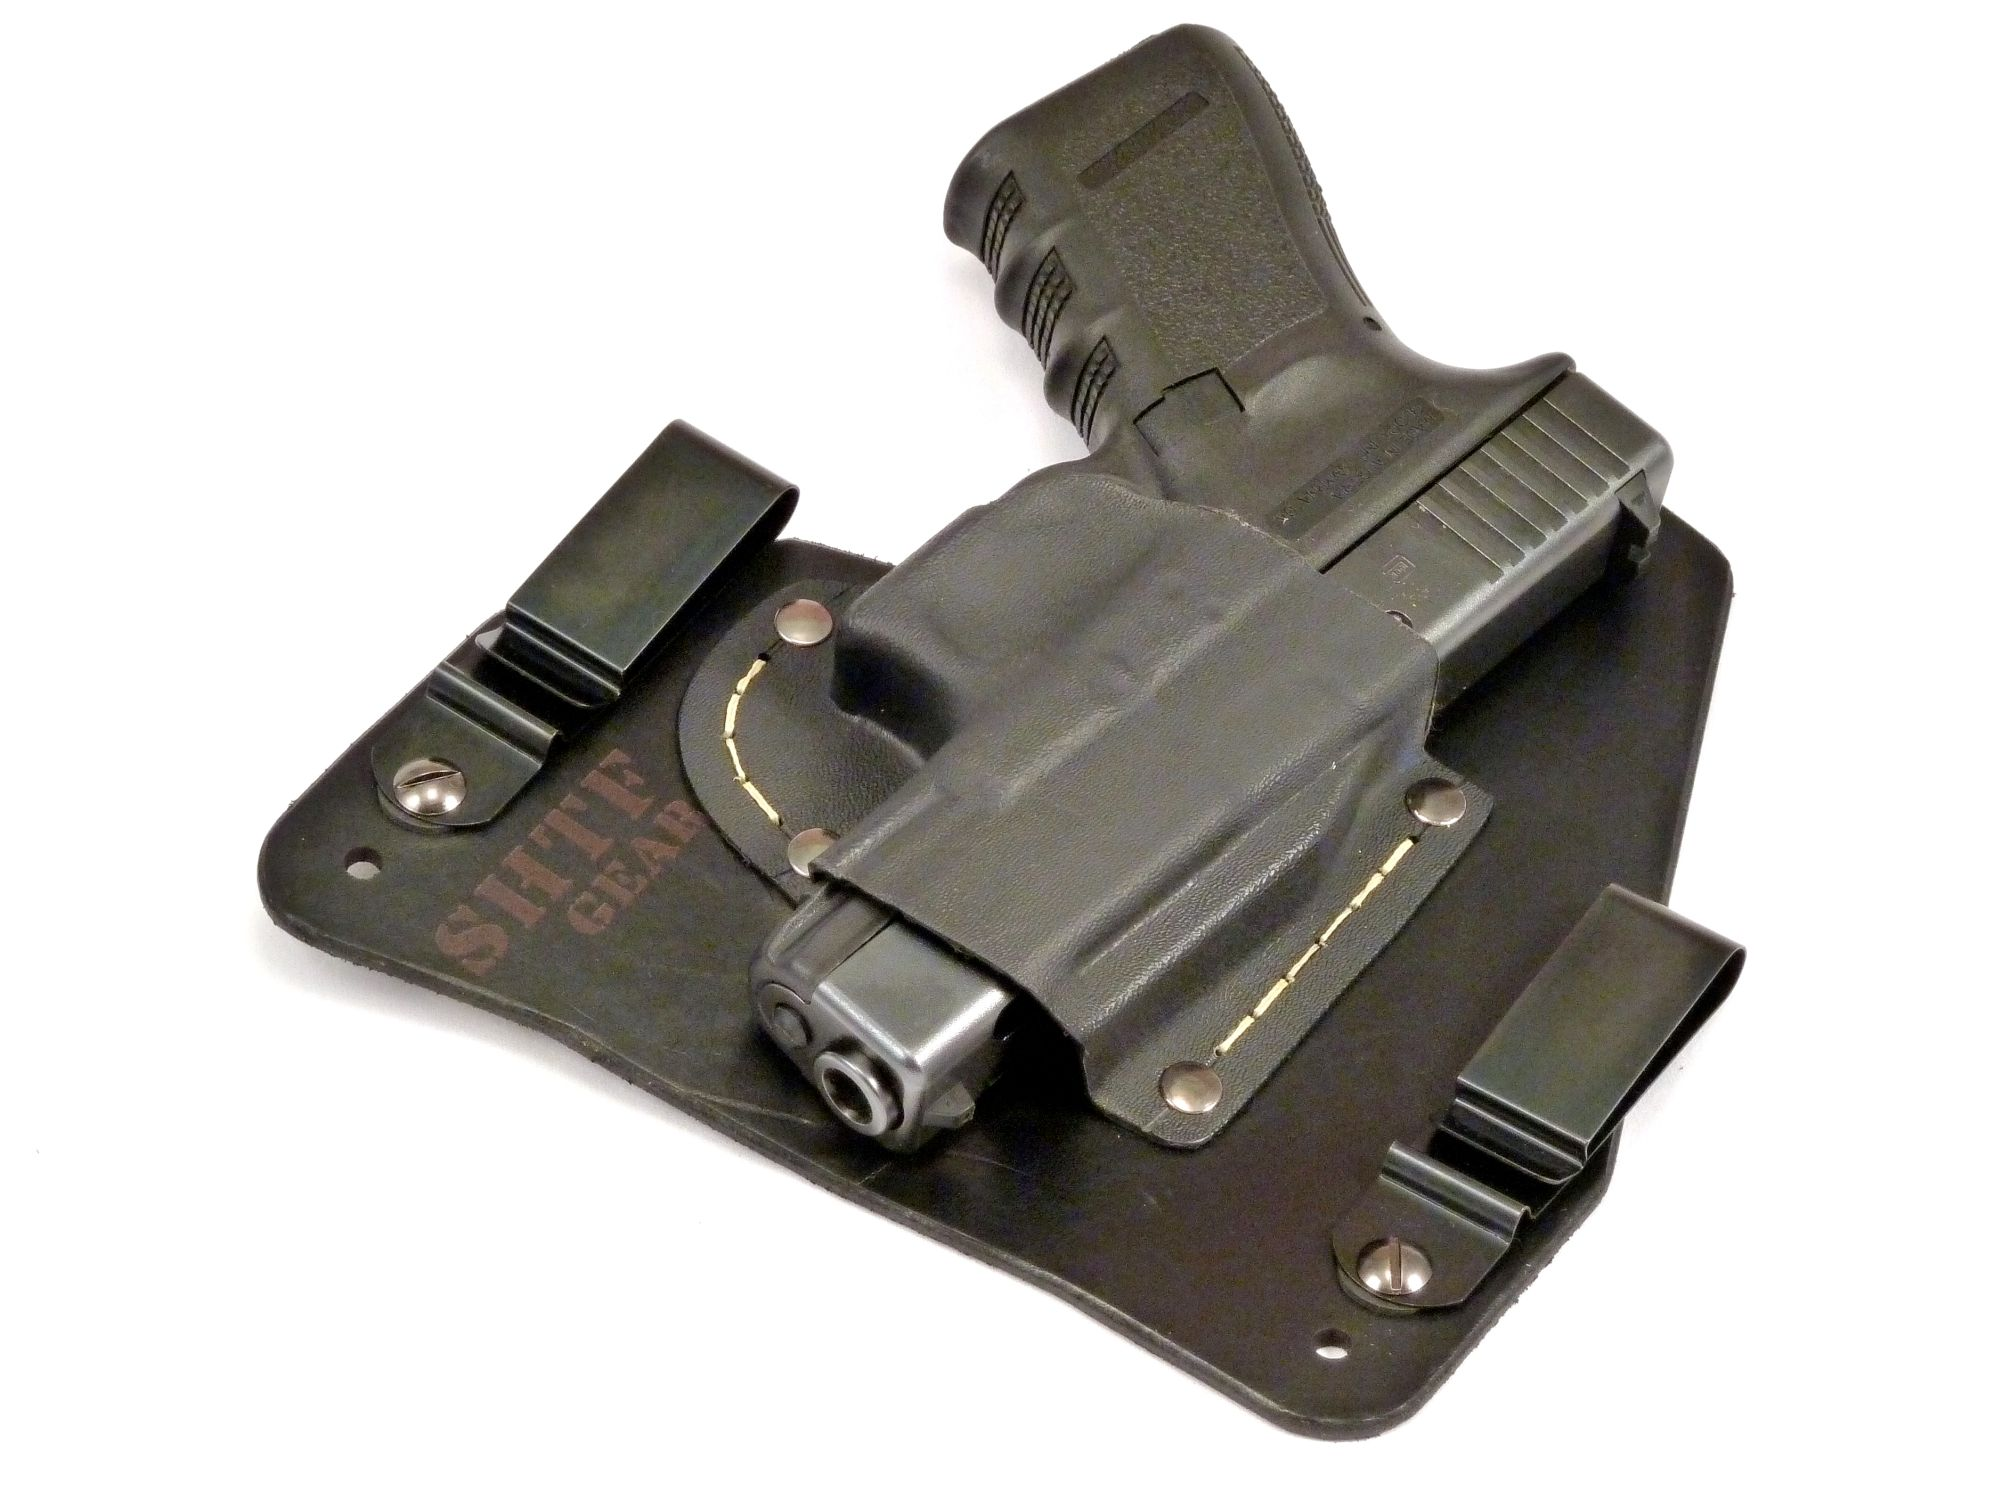 Give a new guy some help with cc a glock 19?-glock-gun-front-right-1500.jpg